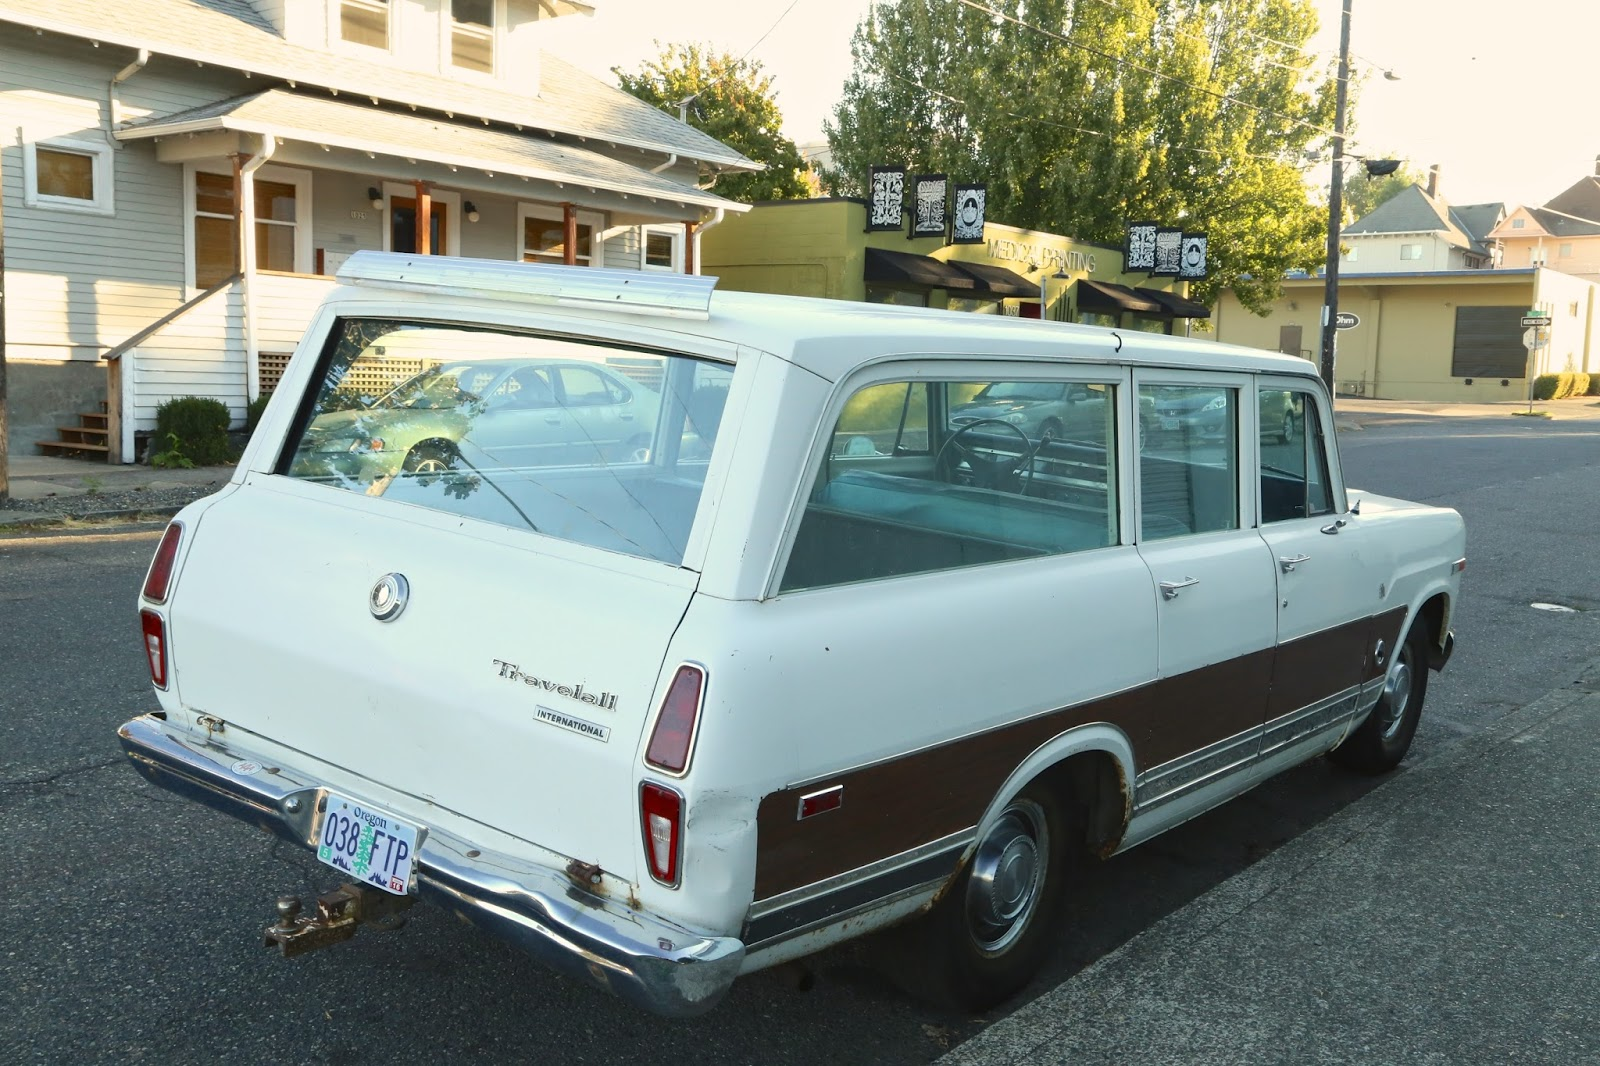 1972 International Harvester Travelall.